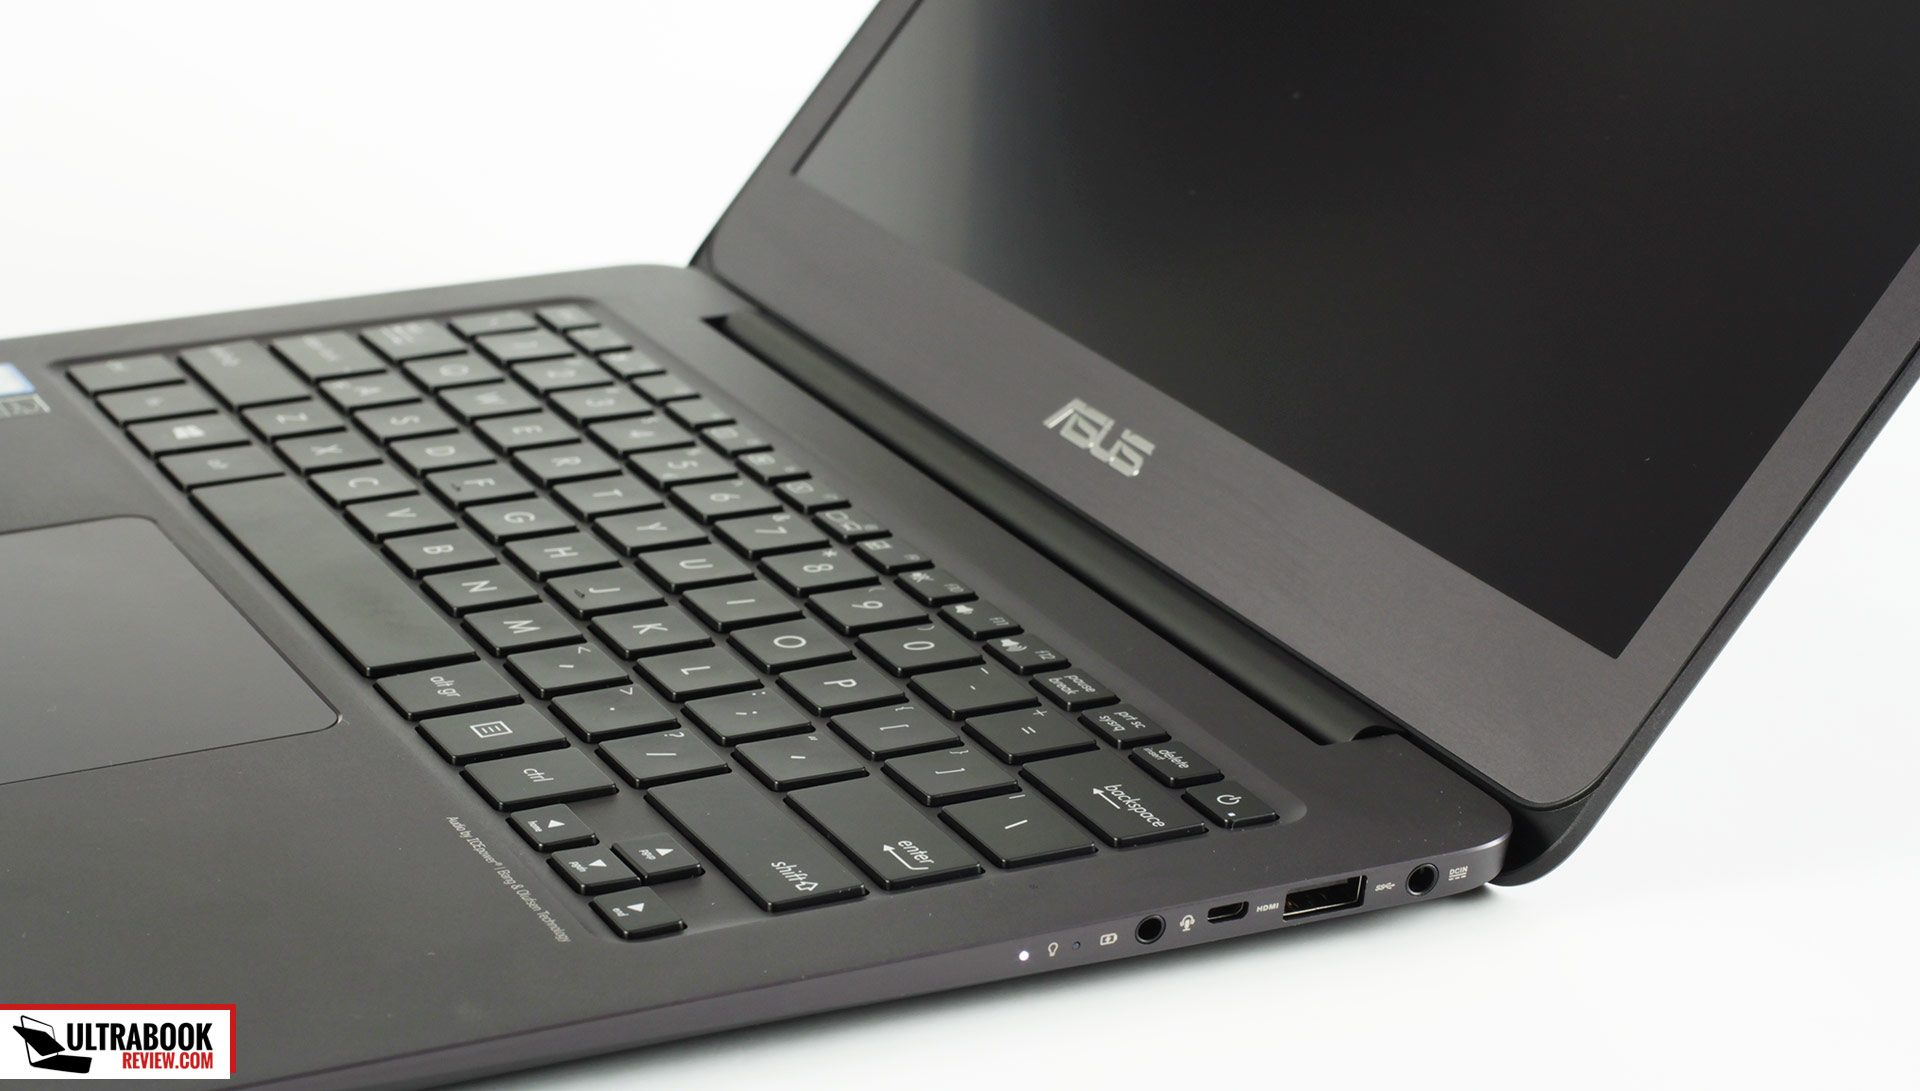 Asus Zenbook Ux305ua Review A Solid Skylake Ultraportable For Limited Budgets